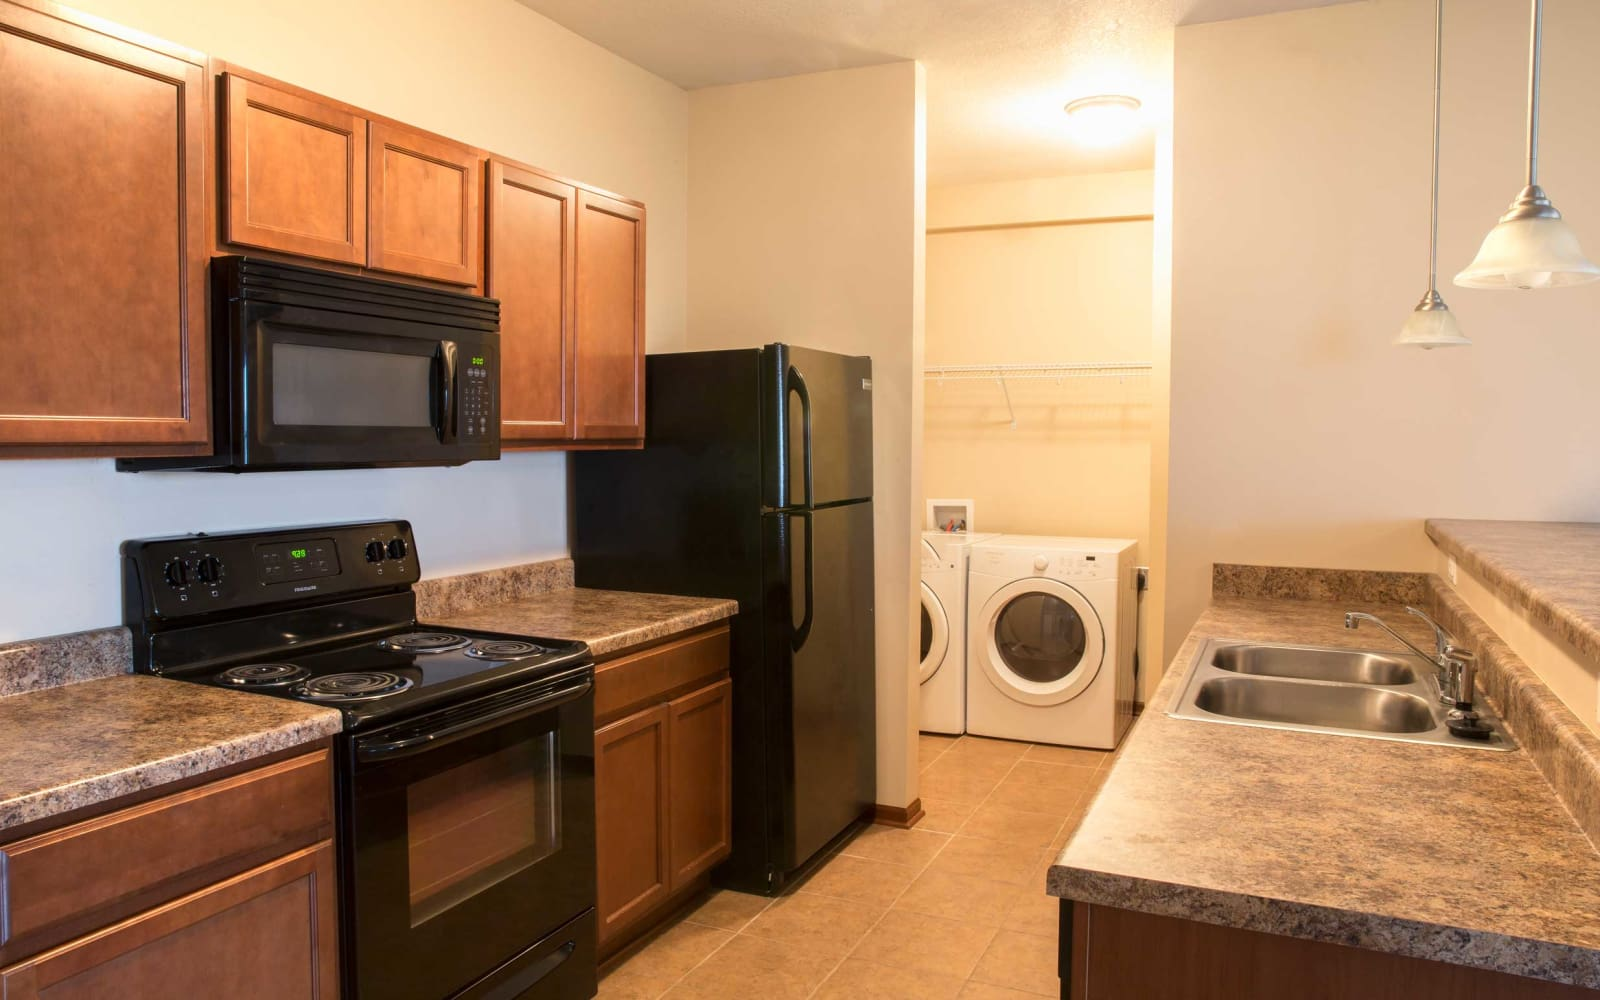 Apartment kitchen and adjacent laundry room= at Westwood Village in Ames, Iowa